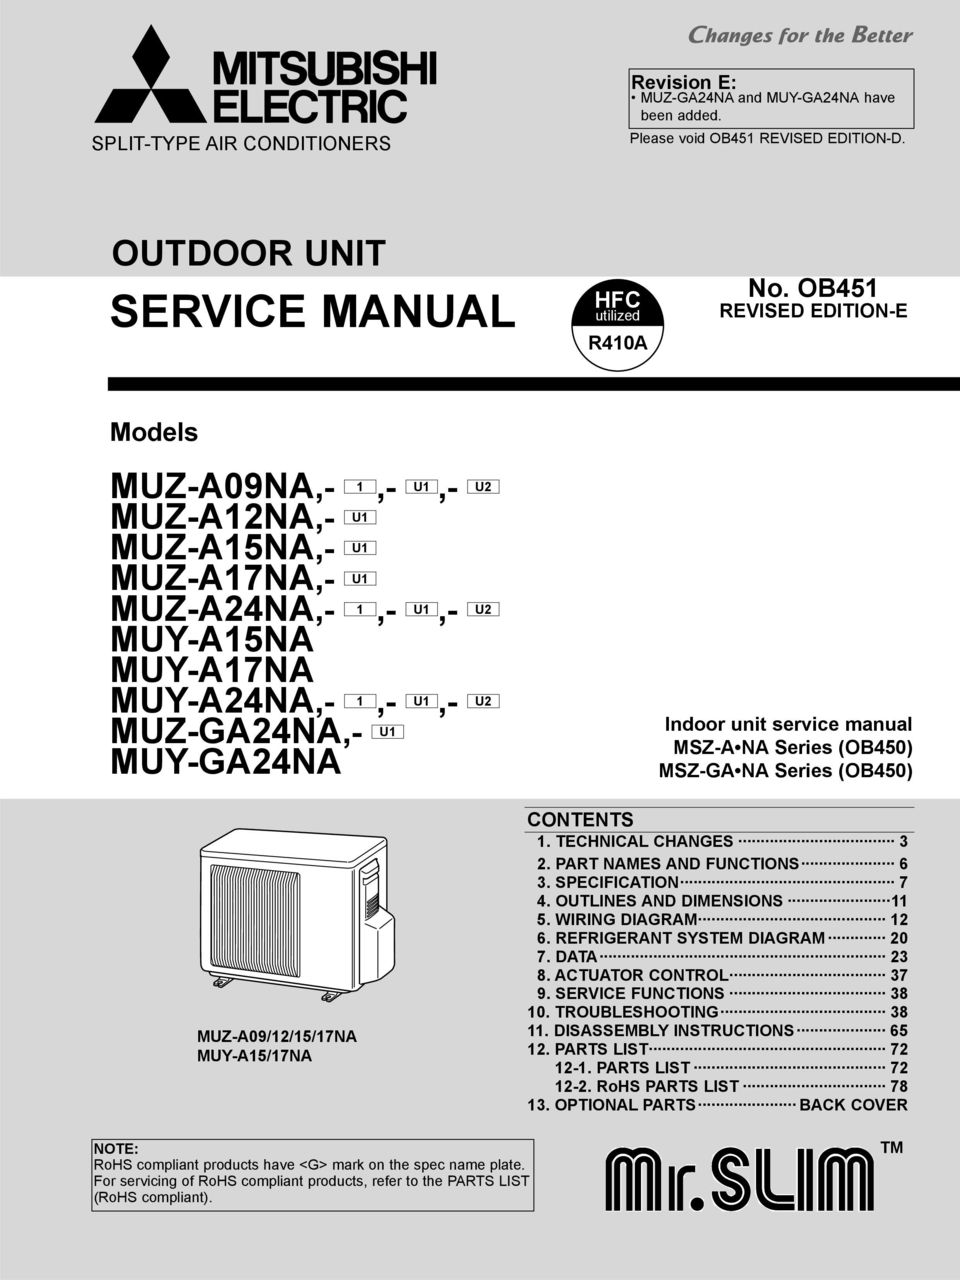 Service Manual Outdoor Unit Muz A09na 1 U1 U2 A12na Wiring Diagrams Indoor Msz A Na Series Ob450 Ga